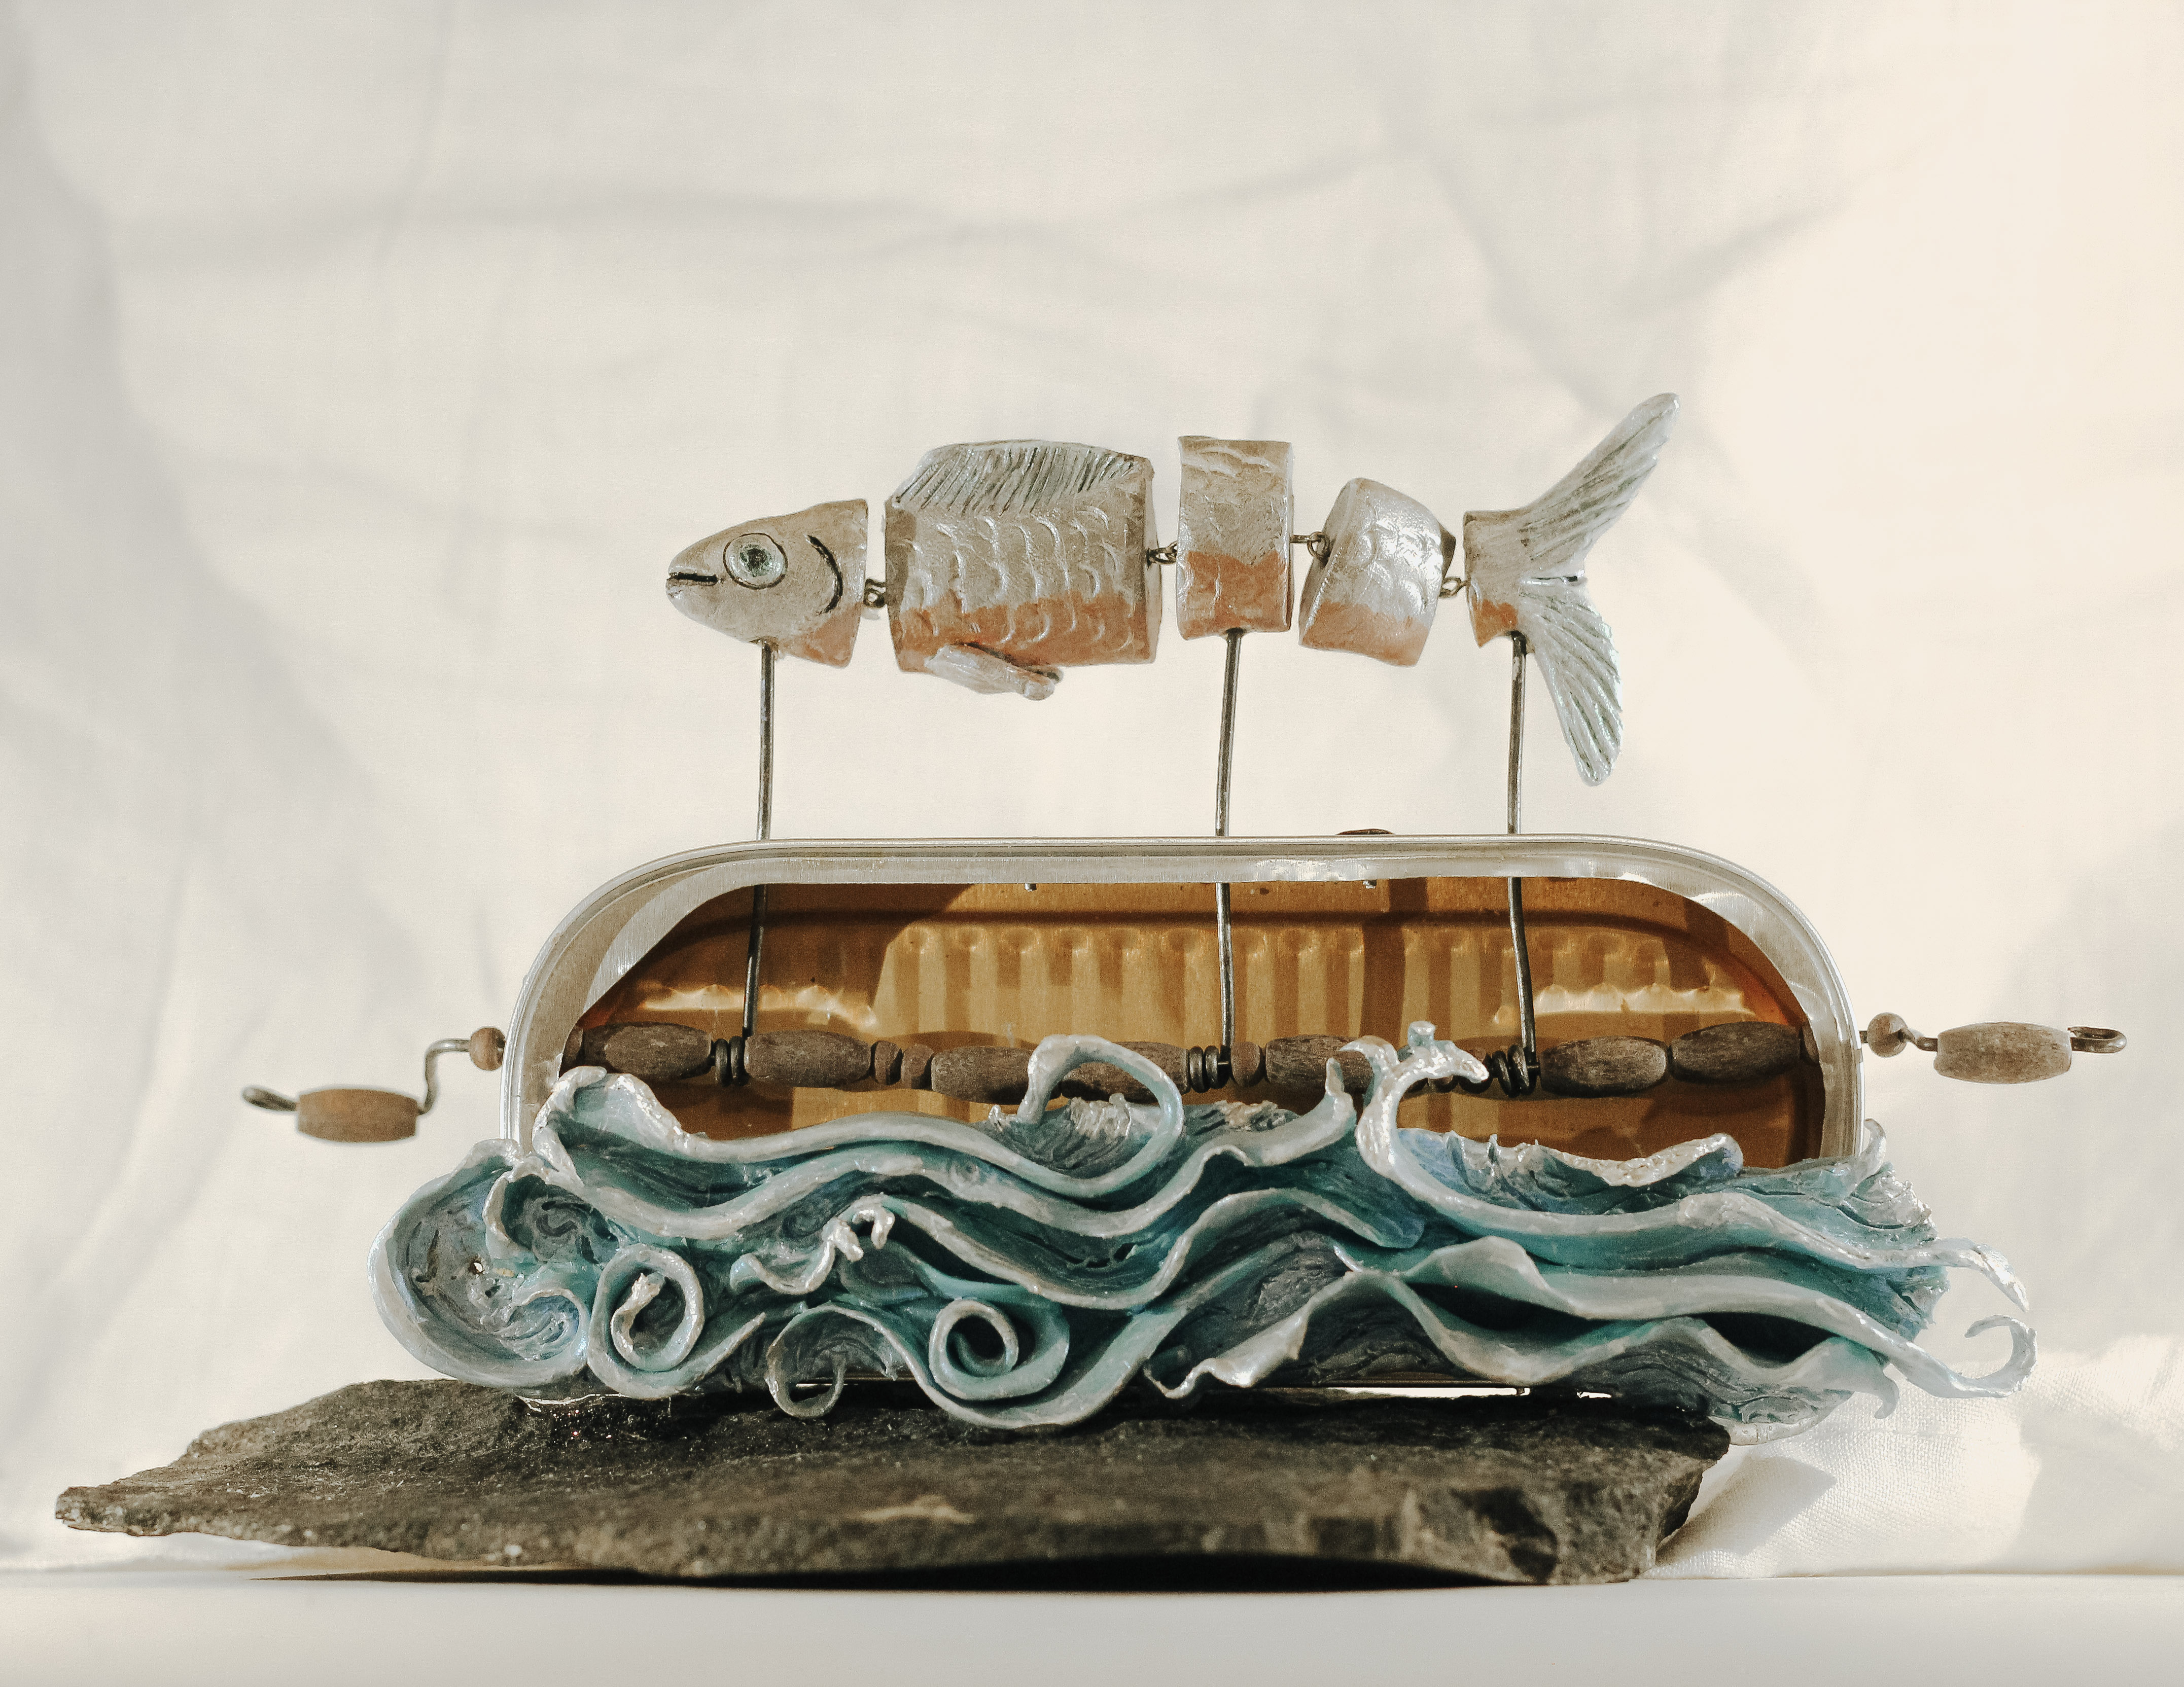 Out of School Kinetic Sculpture - Yvonne Musey Johnson (click link below to see in-action video)